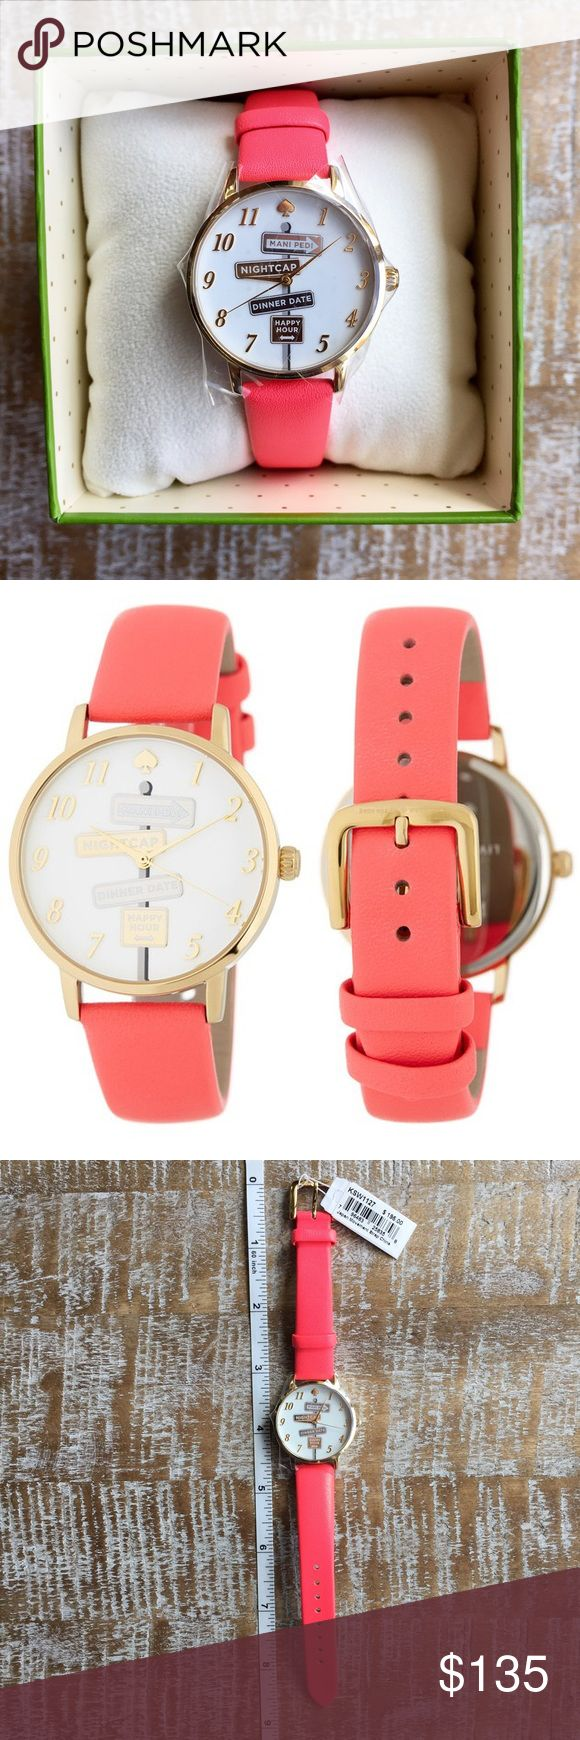 Kate Spade Watch ♠️ Brand new with tags! Kate Spade women's metro leather watch! The pink strap is leather and 3/5 of an inch wide. The case is 34mm and 8mm thick. Movement = quartz. Crystal = mineral. Case material = stainless steal. Water resistance 30meters. Comes in box with care booklet! kate spade Accessories Watches